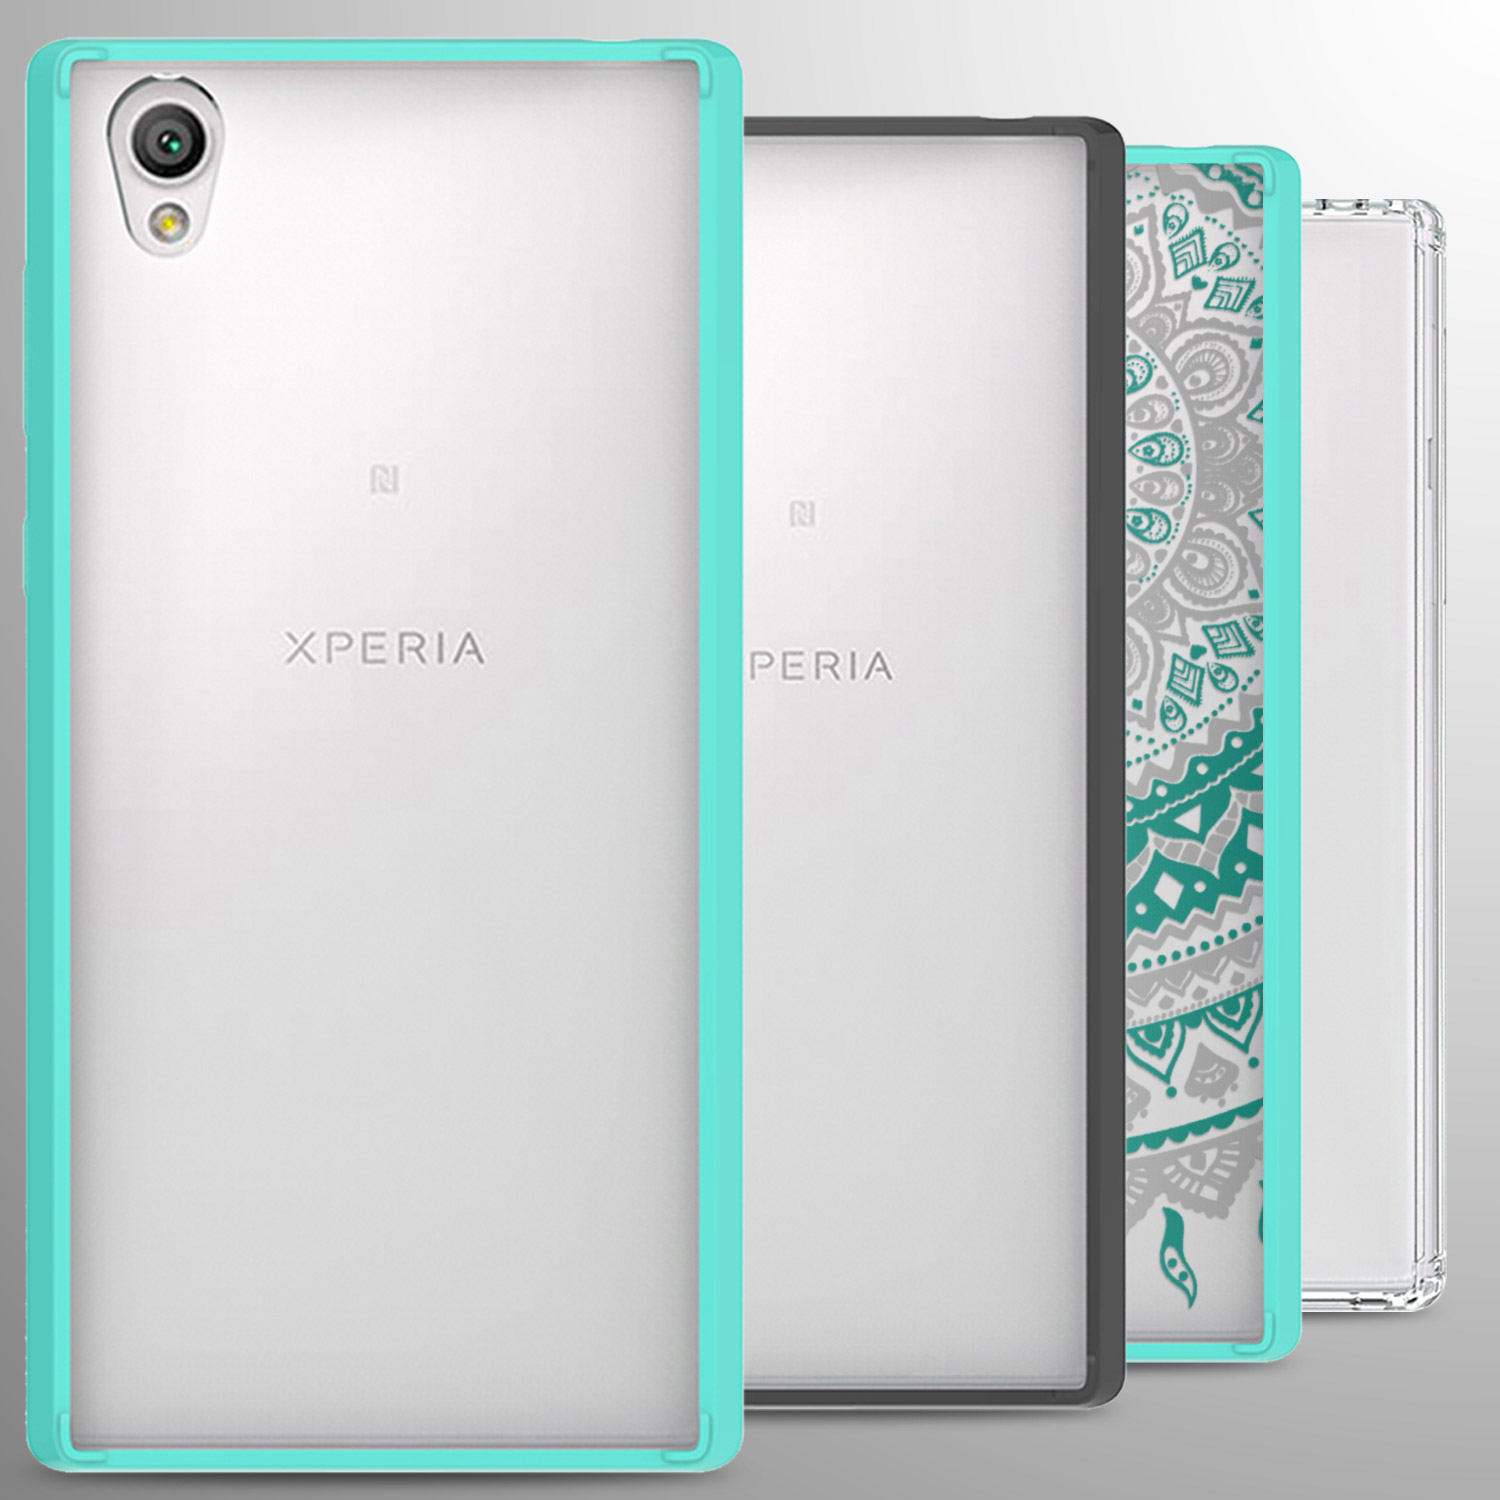 new style dbd7f 0d9d9 For Sony Xperia L1 Case Hard Back Bumper Slim Phone Cover   eBay